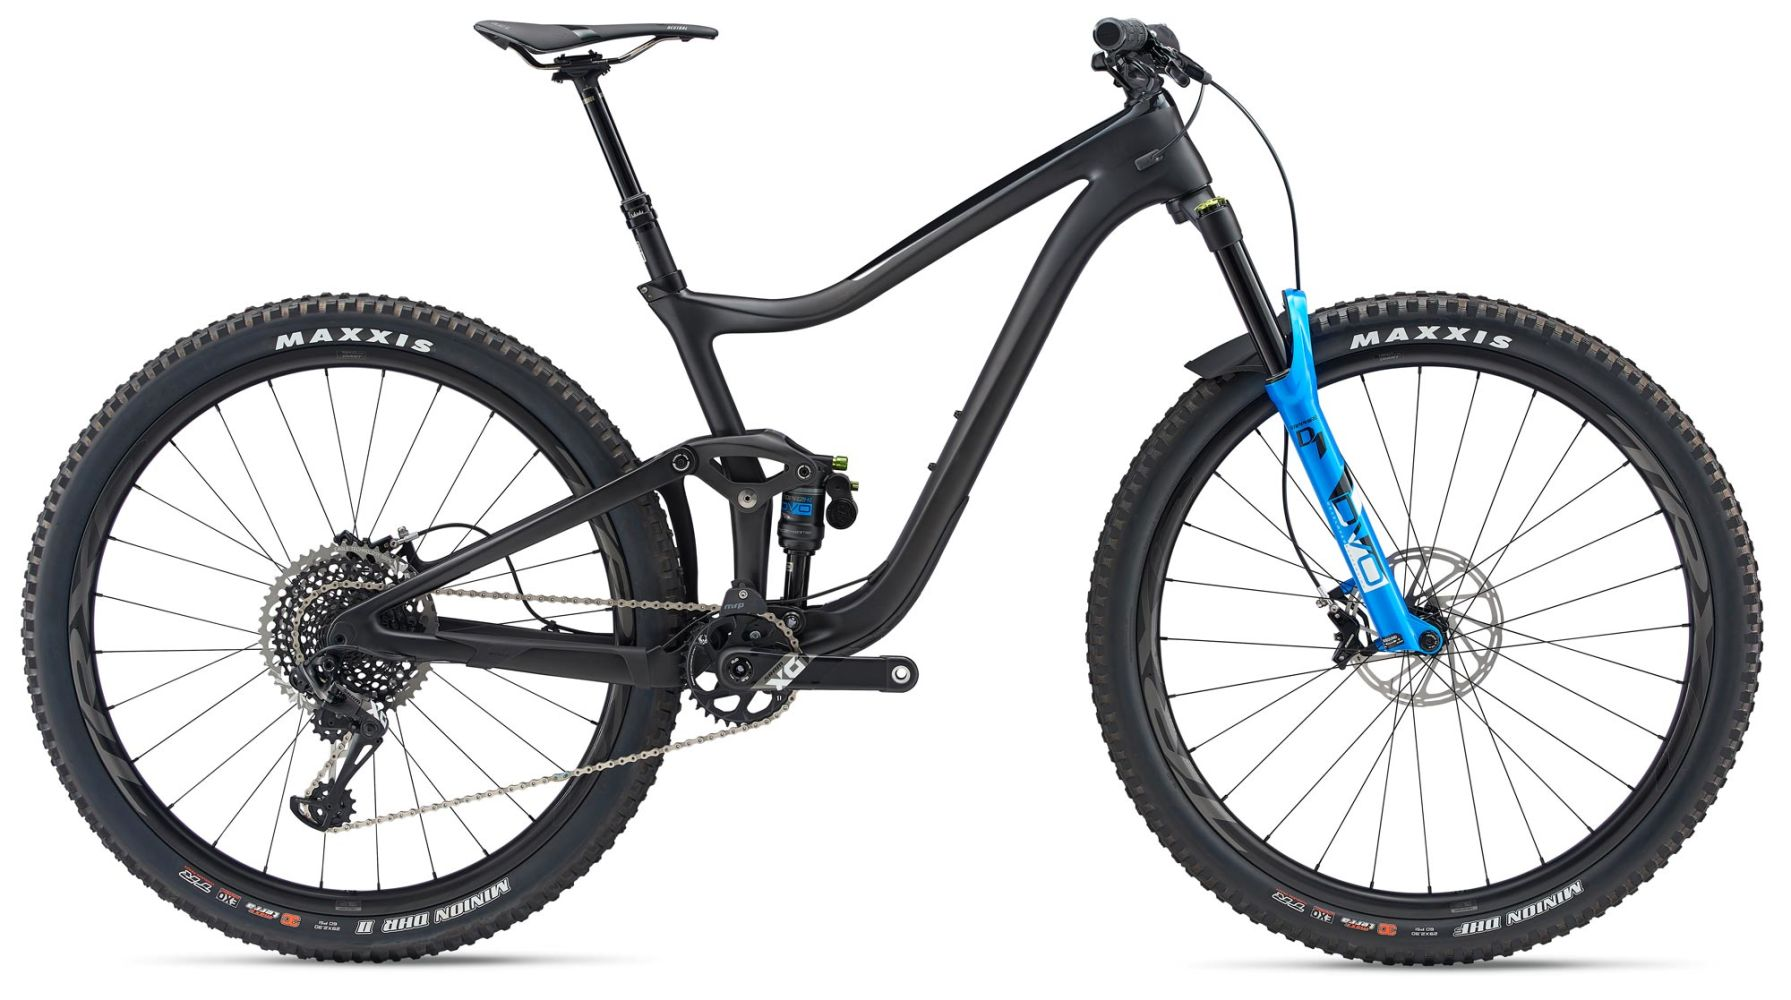 giant gives the trance trail bike 29-inch wheels for 2019